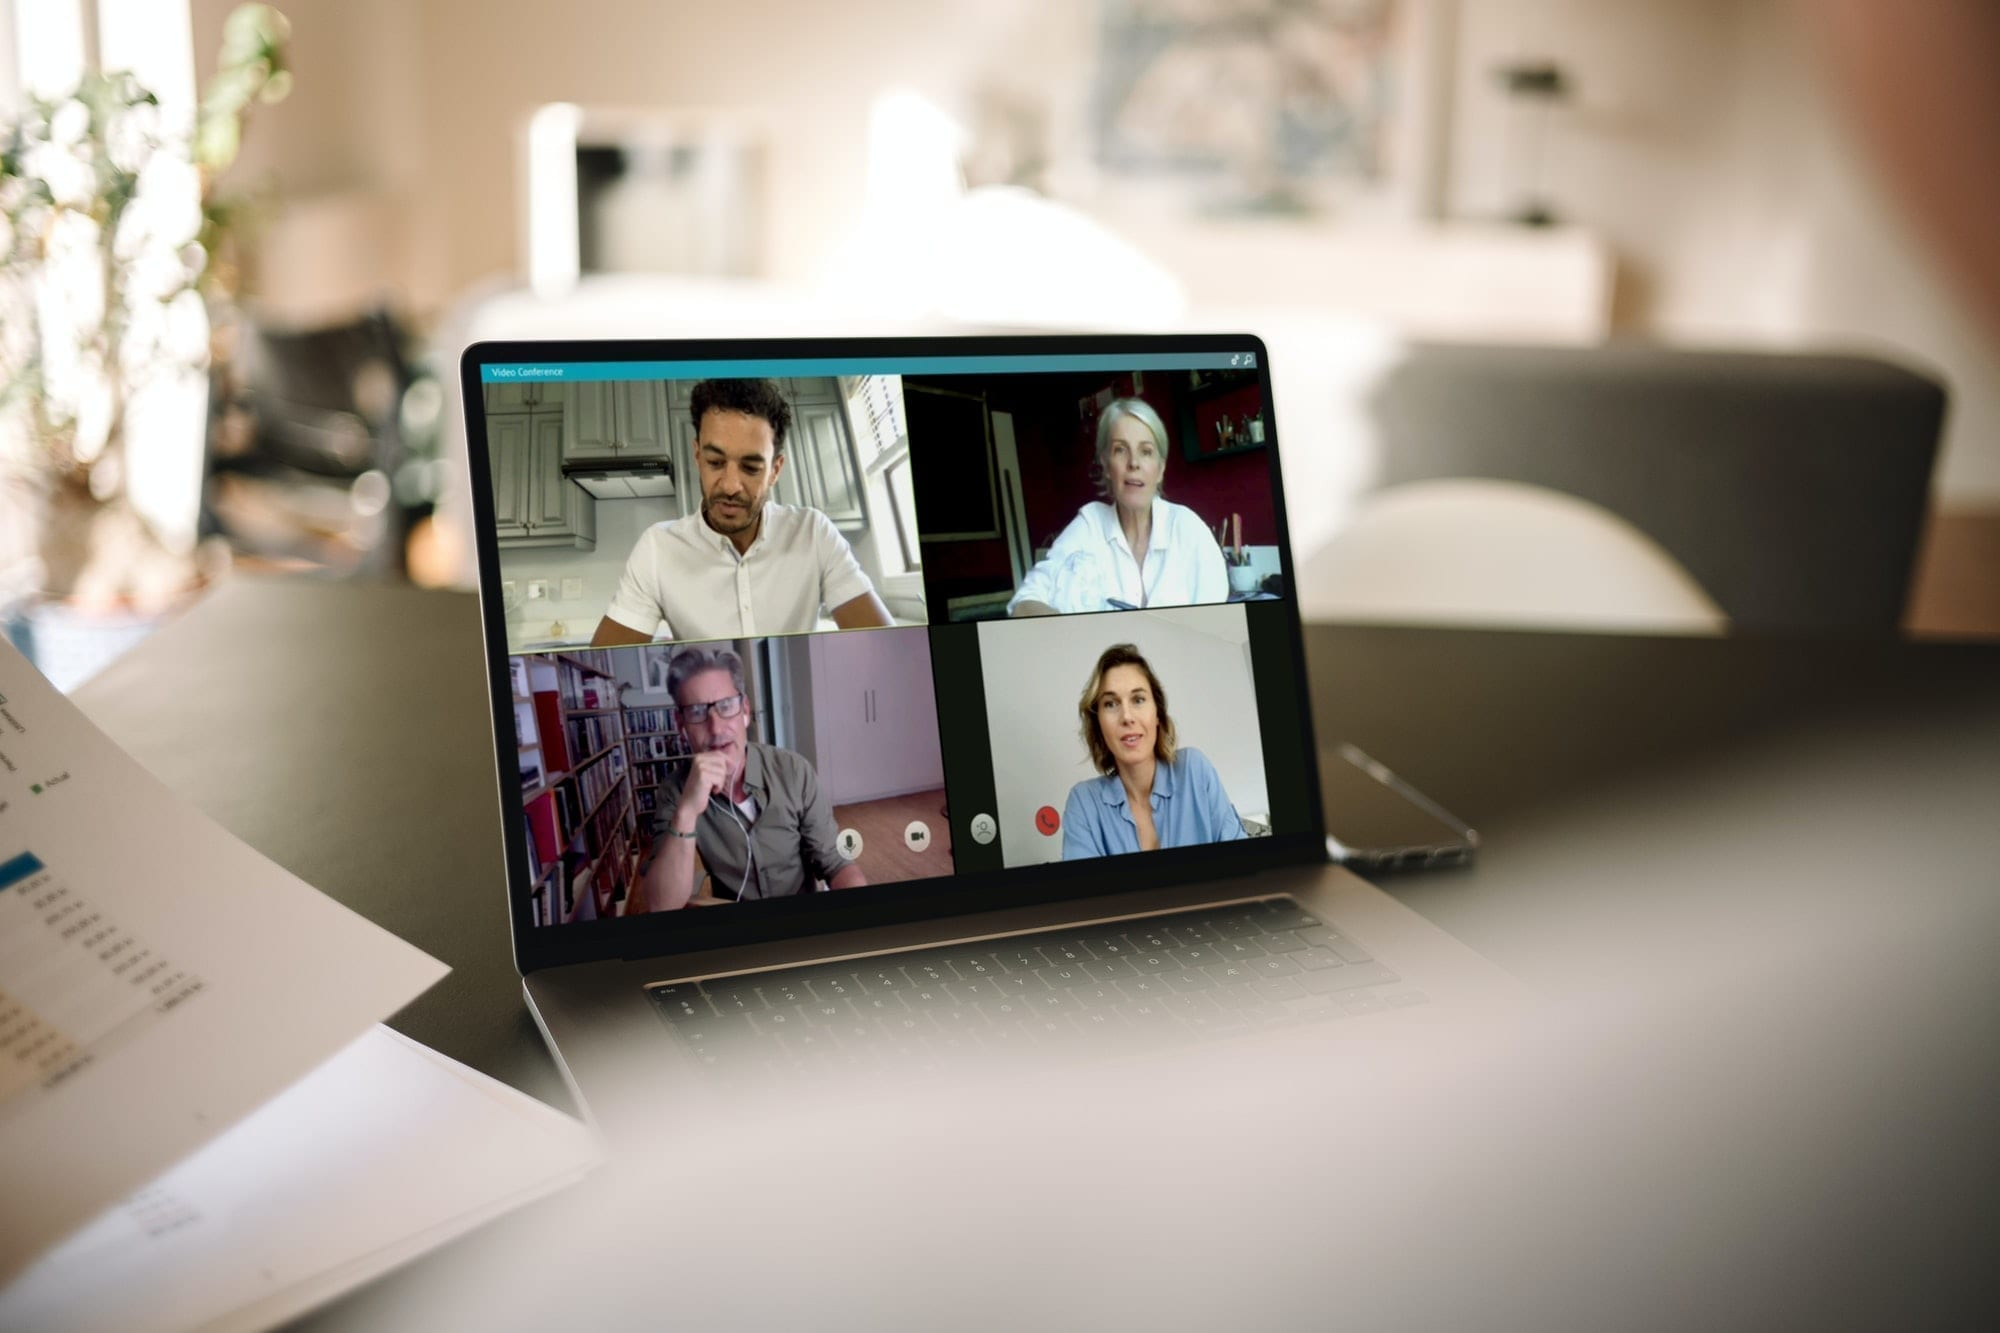 Online meeting via video conference call, team spirit